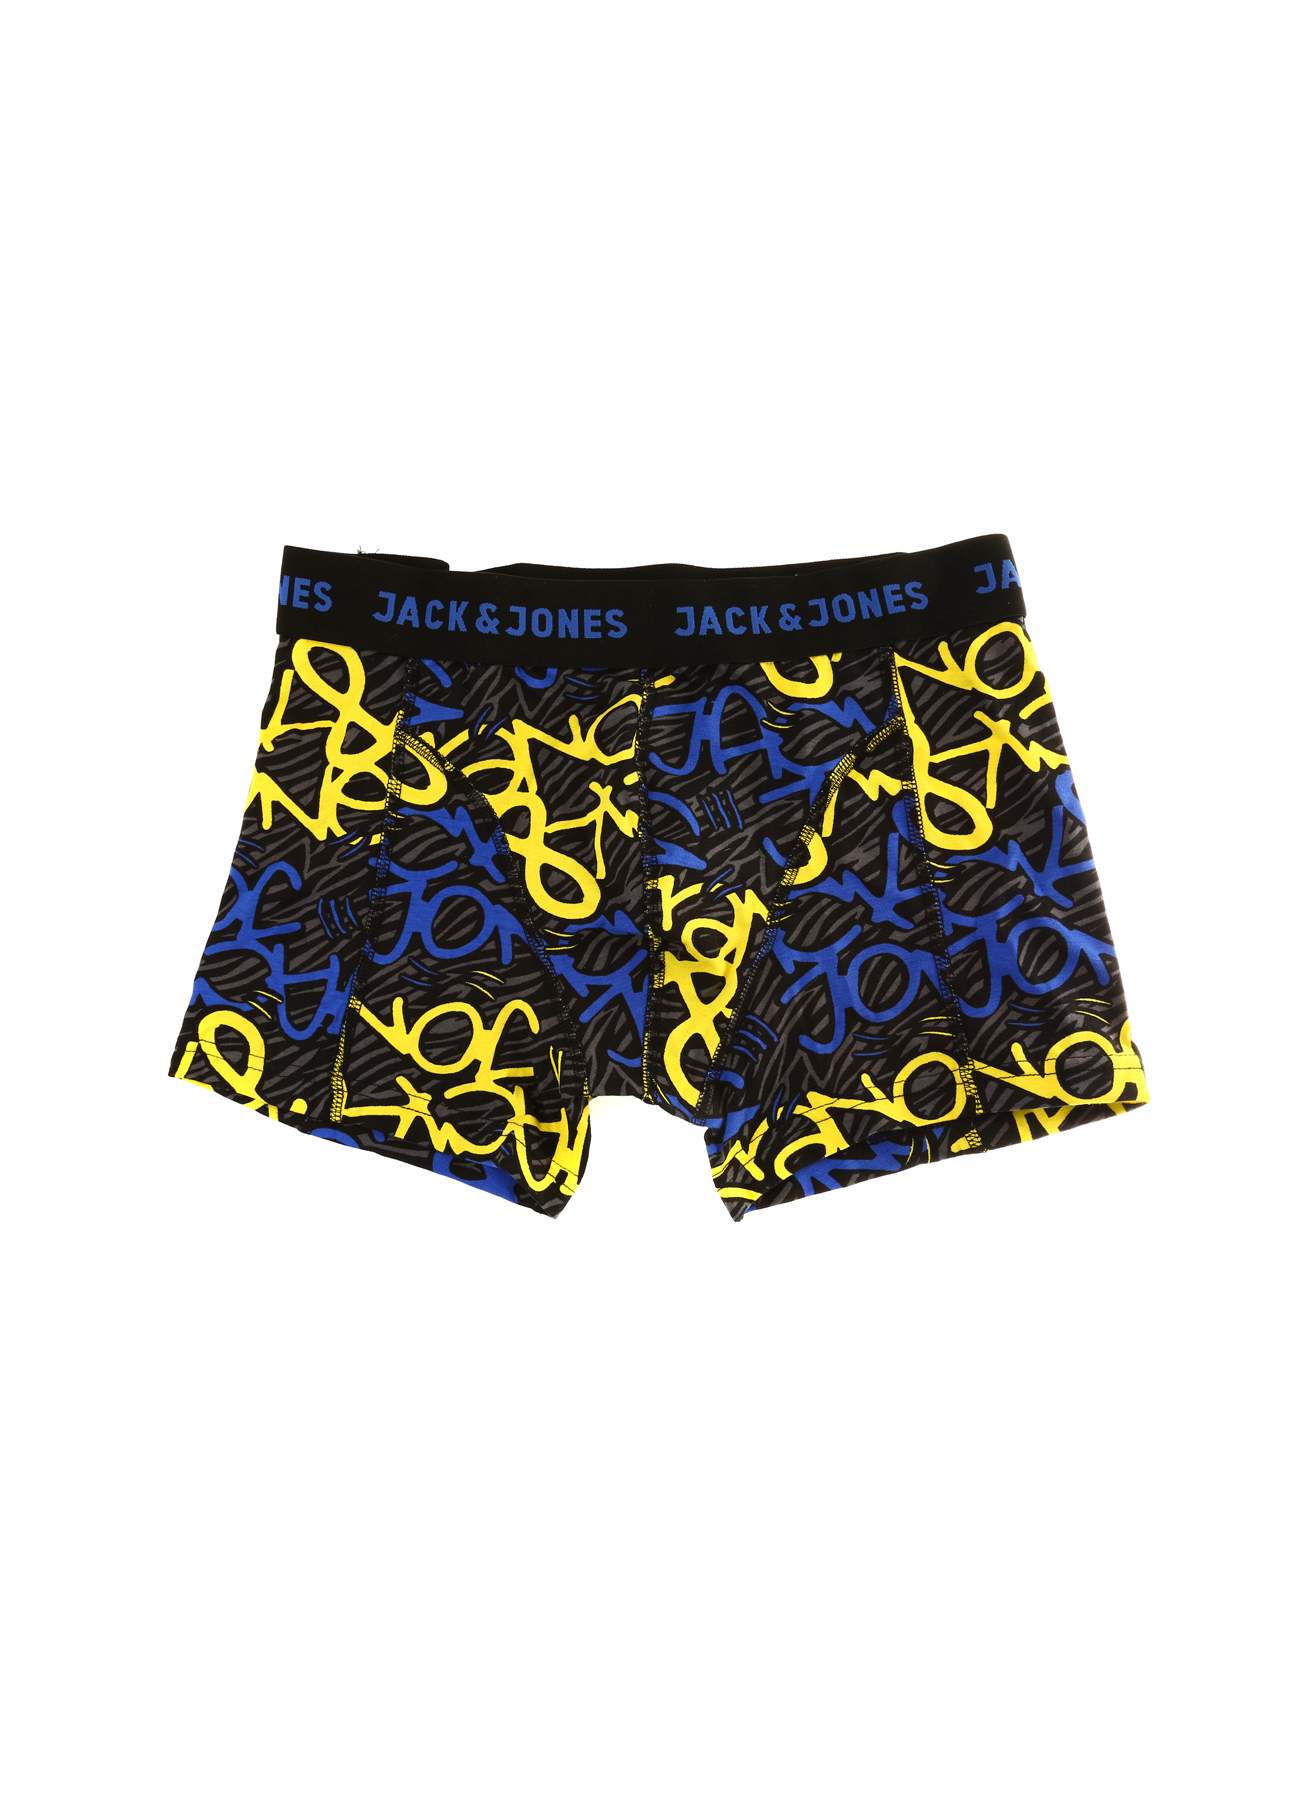 Jack & Jones Pertro Trunks Try Boxer L 5001752708001 Ürün Resmi